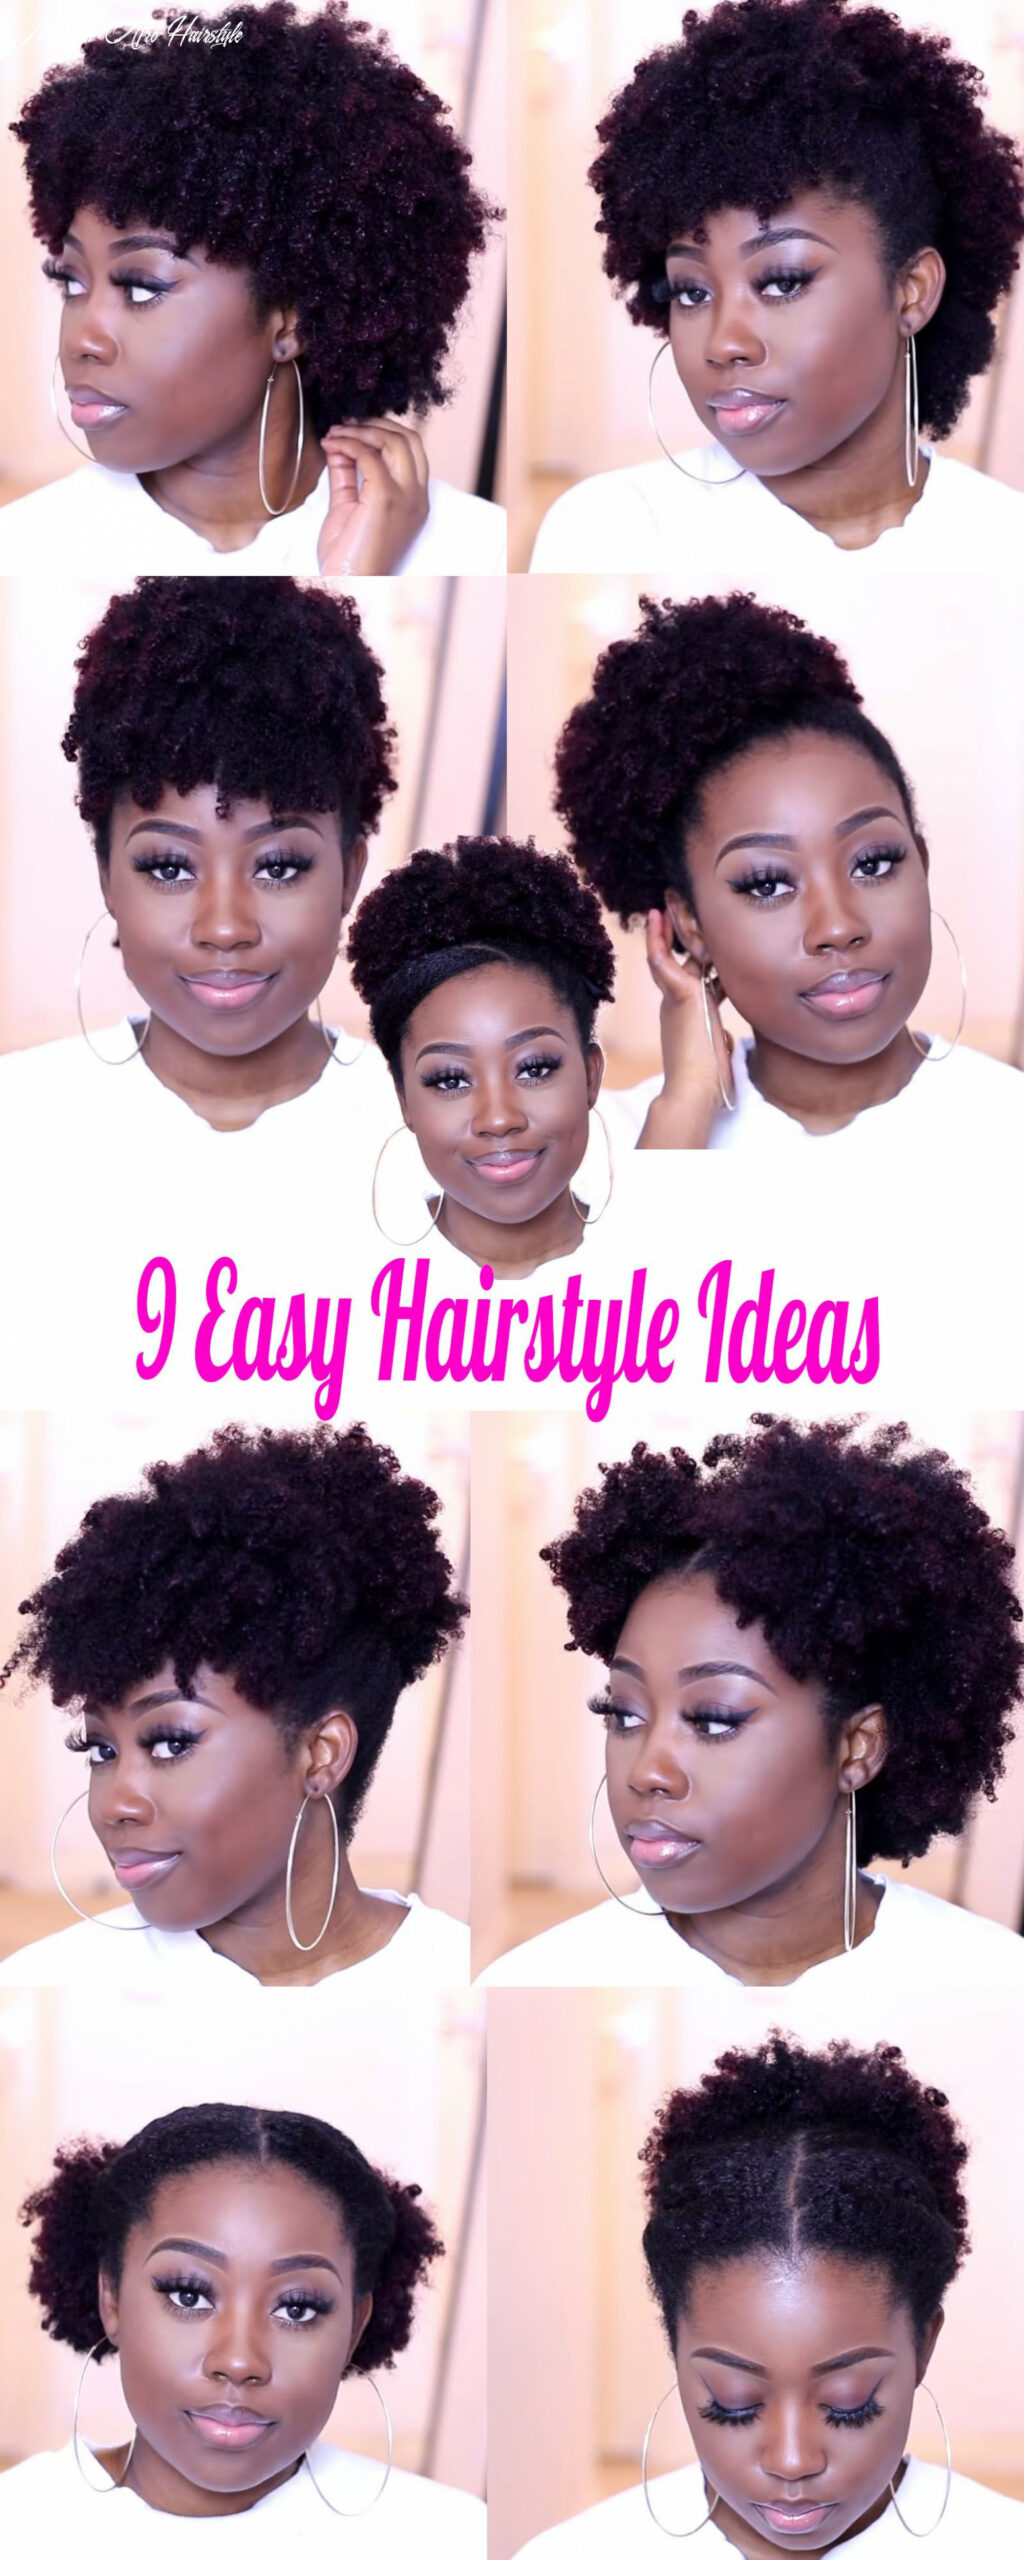 10 medium natural hairstyle ideas you can quickly create on the go